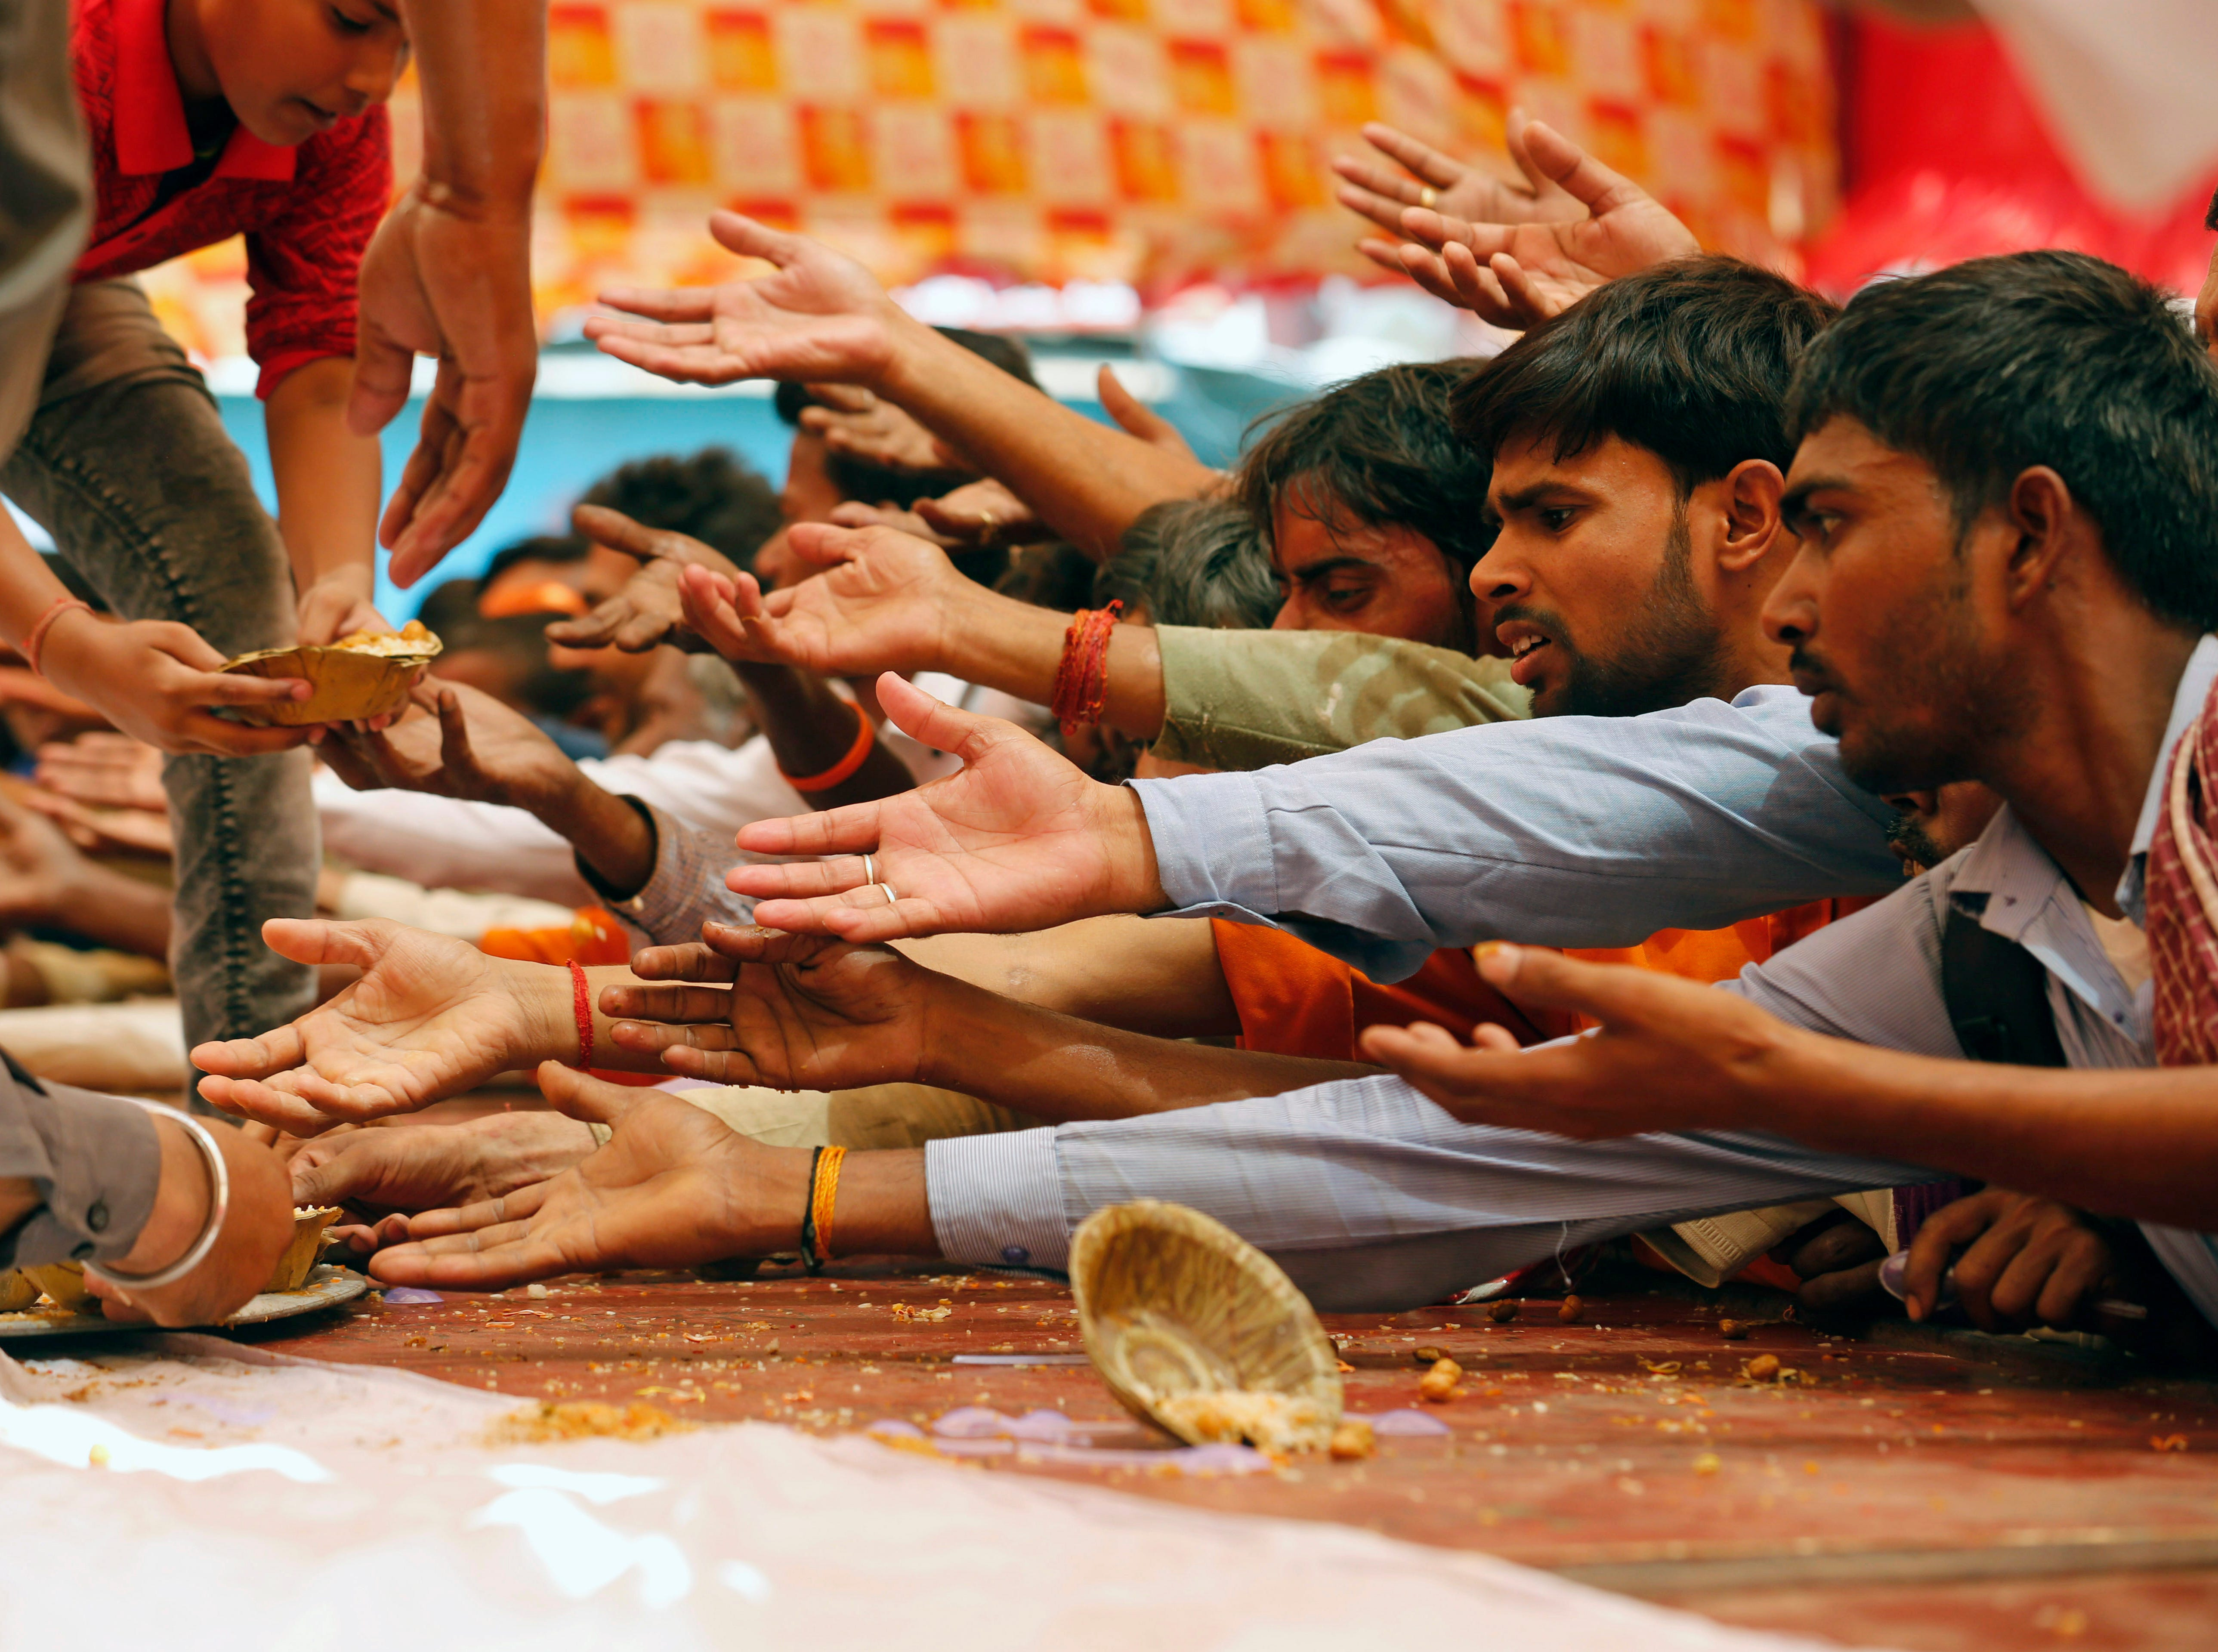 Passersby stretch out their arms to receive food distributed on a street to mark Bada Mangal in Lucknow, India, Tuesday, May 21, 2019. Bada Mangal, celebrated on auspicious Tuesdays, is a day dedicated to Hindu monkey God Hanuman, in which devotees distribute food and drinks to passersby.